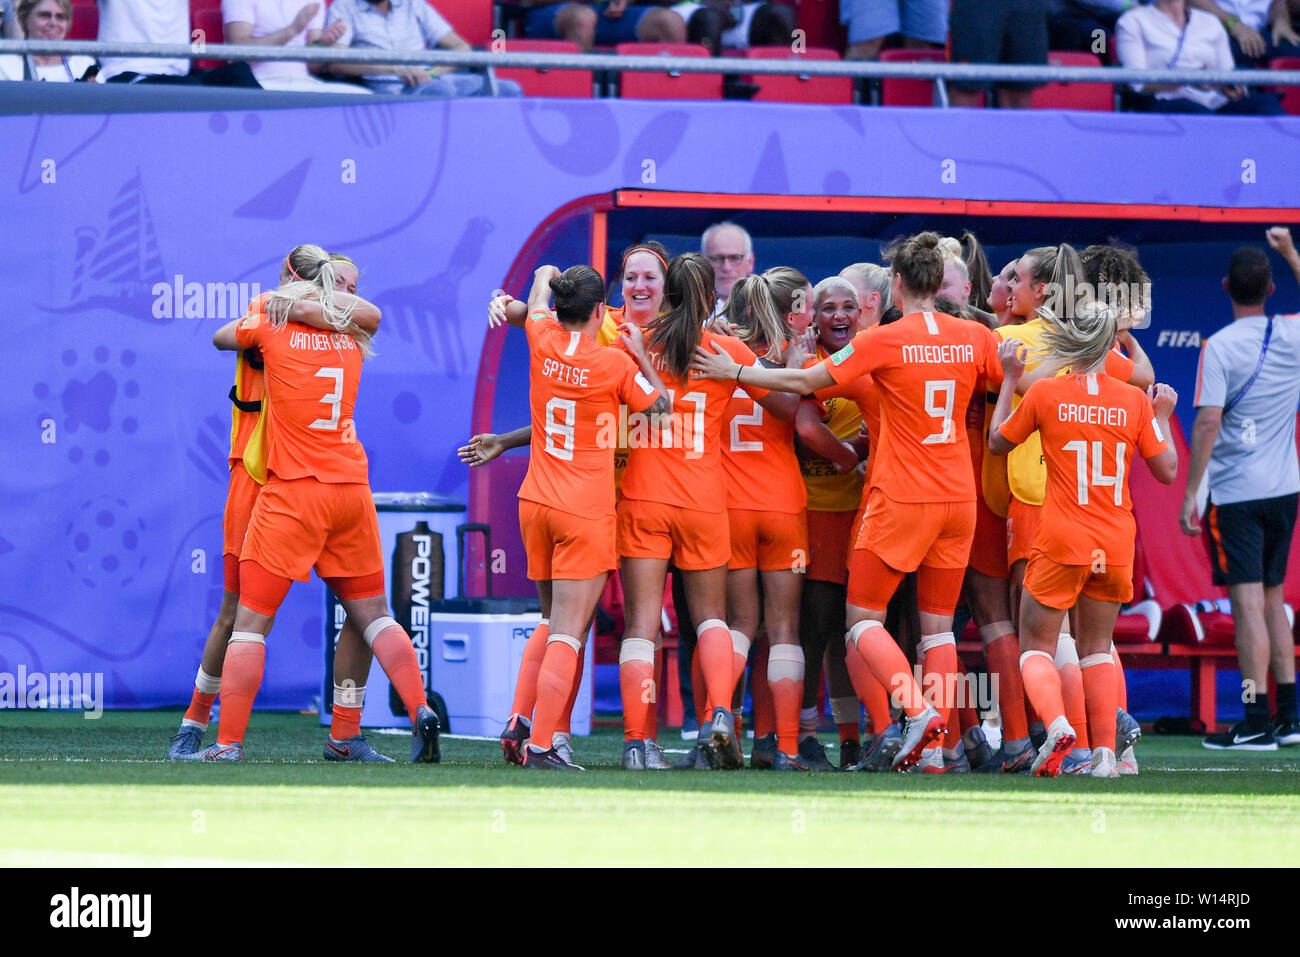 Valenciennes, Frankreich. 29th June, 2019., 29.06.2019, Valenciennes (France), Football, FIFA Women's World Cup 2019, Quarterfinals Italy - Netherlands, FIFA REGULATIONS PROHIBIT ANY USE OF PHOTOGRAPHS AS IMAGE SEQUENCES AND/OR QUASI VIDEO. | usage worldwide Credit: dpa/Alamy Live News Stock Photo